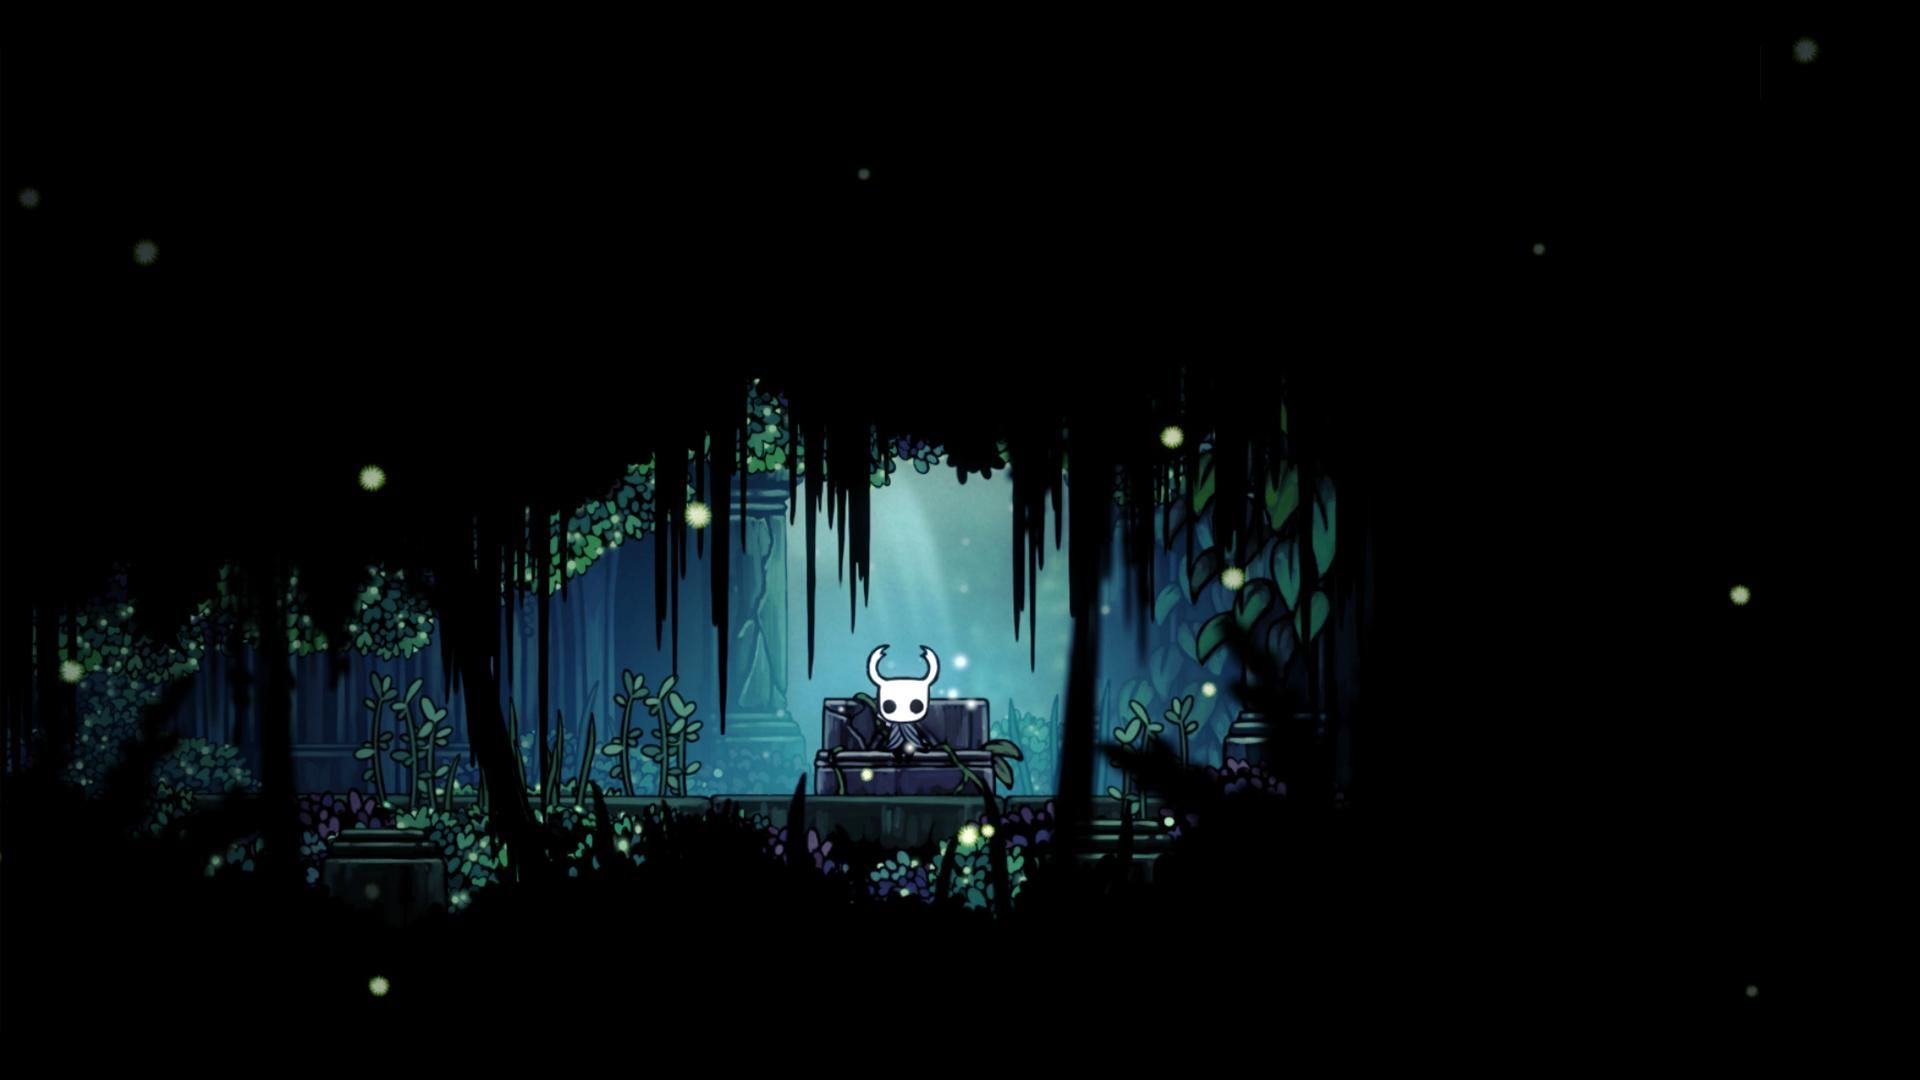 Hollow Knight Wallpaper 1920 X 1080 With Images Android